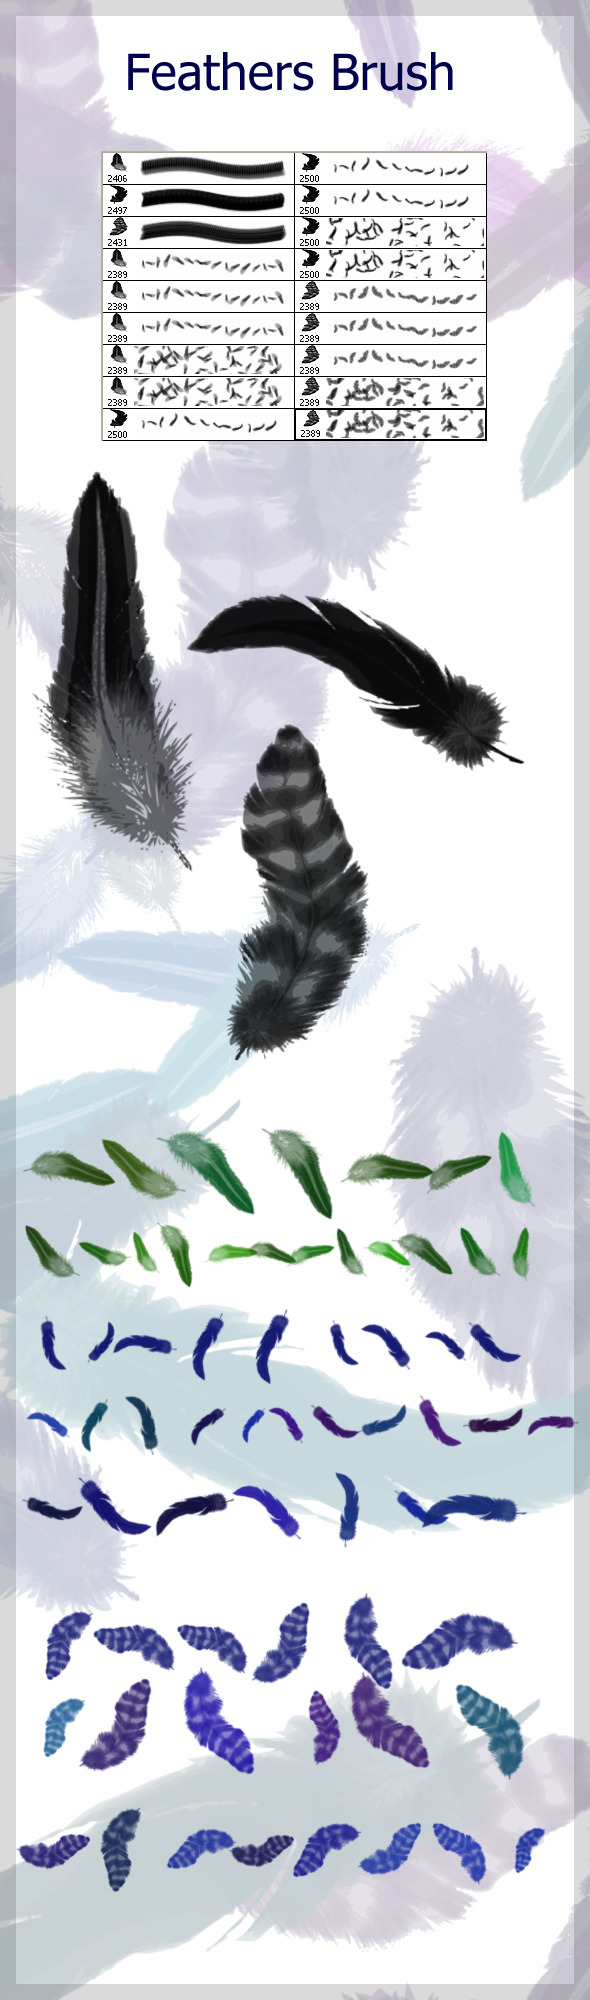 Feathers  Brushes - Brushes Photoshop